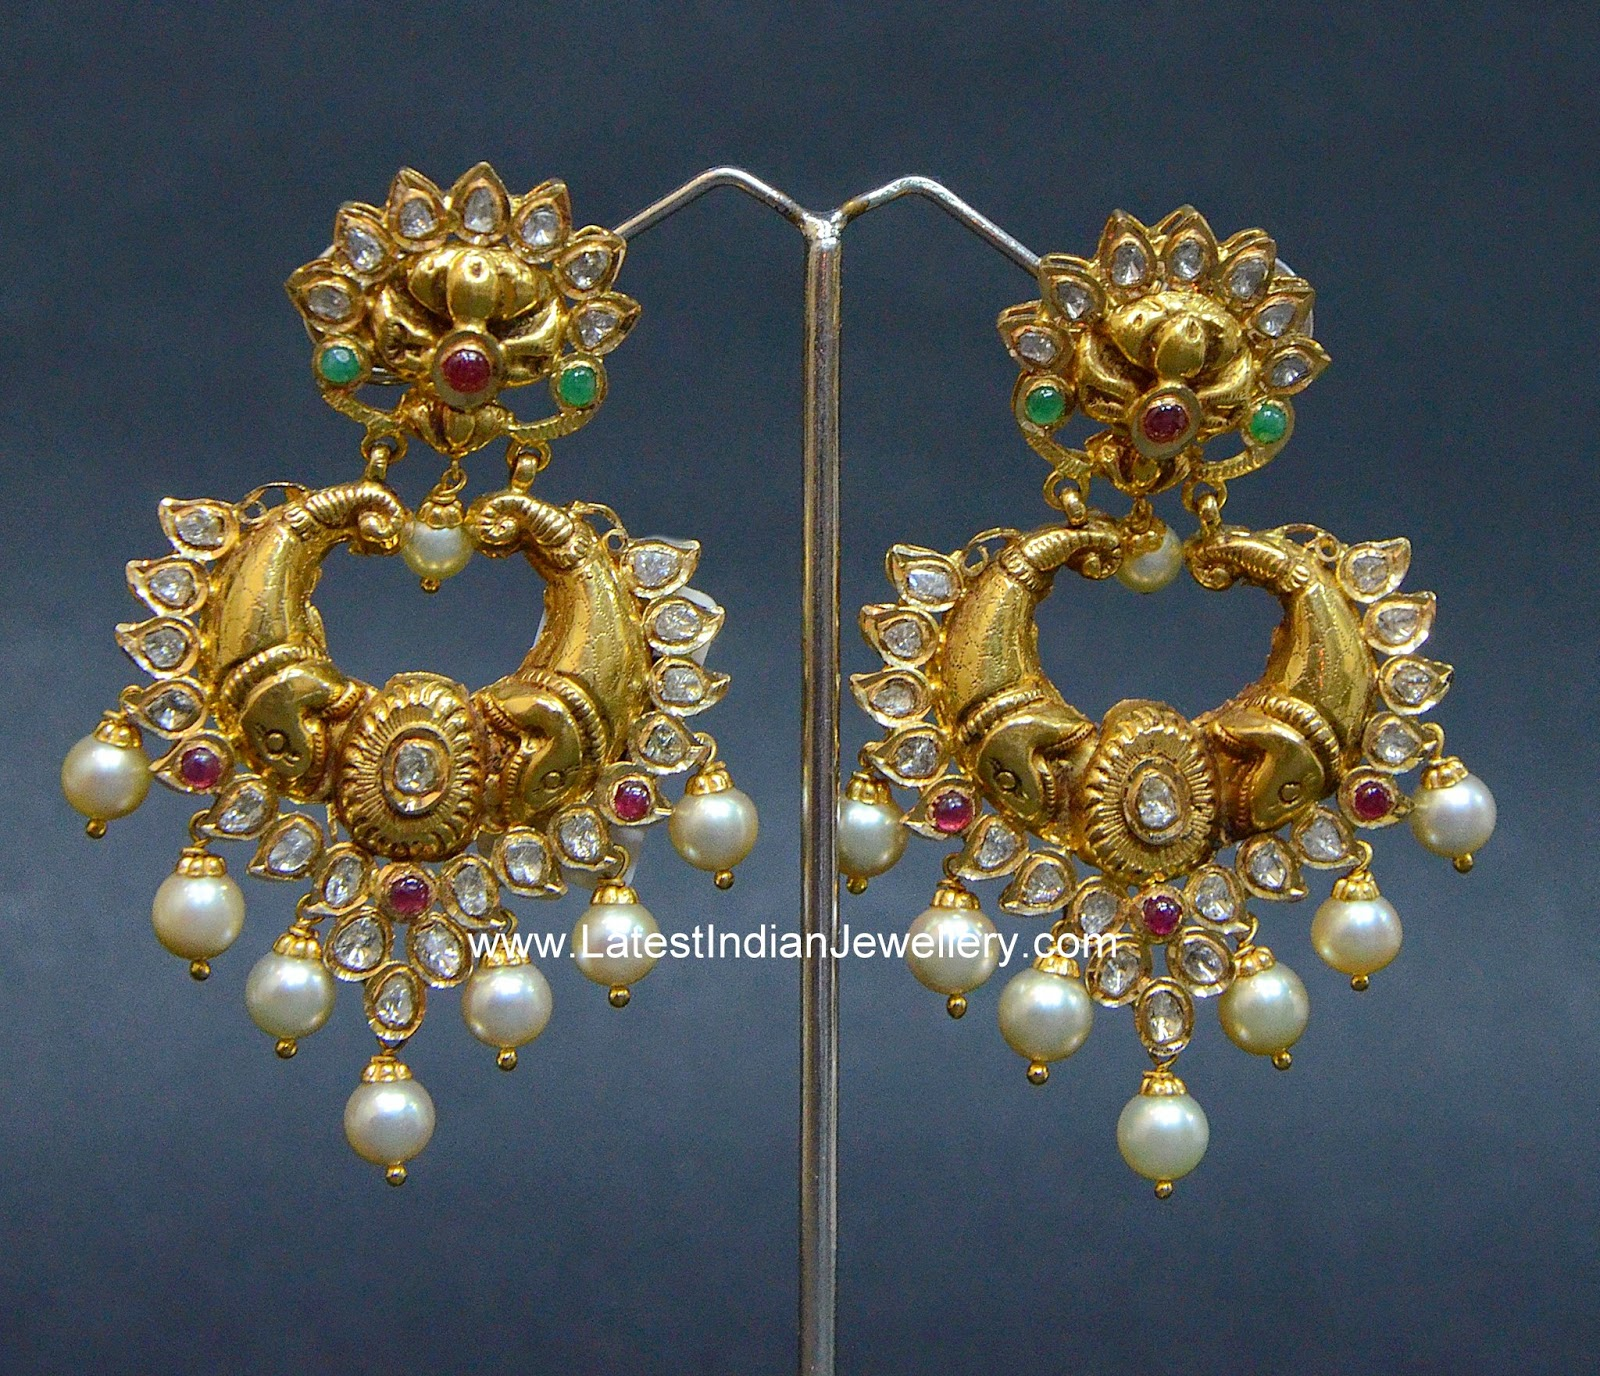 balis earrings temple jewellery nakshi chand balis 6545